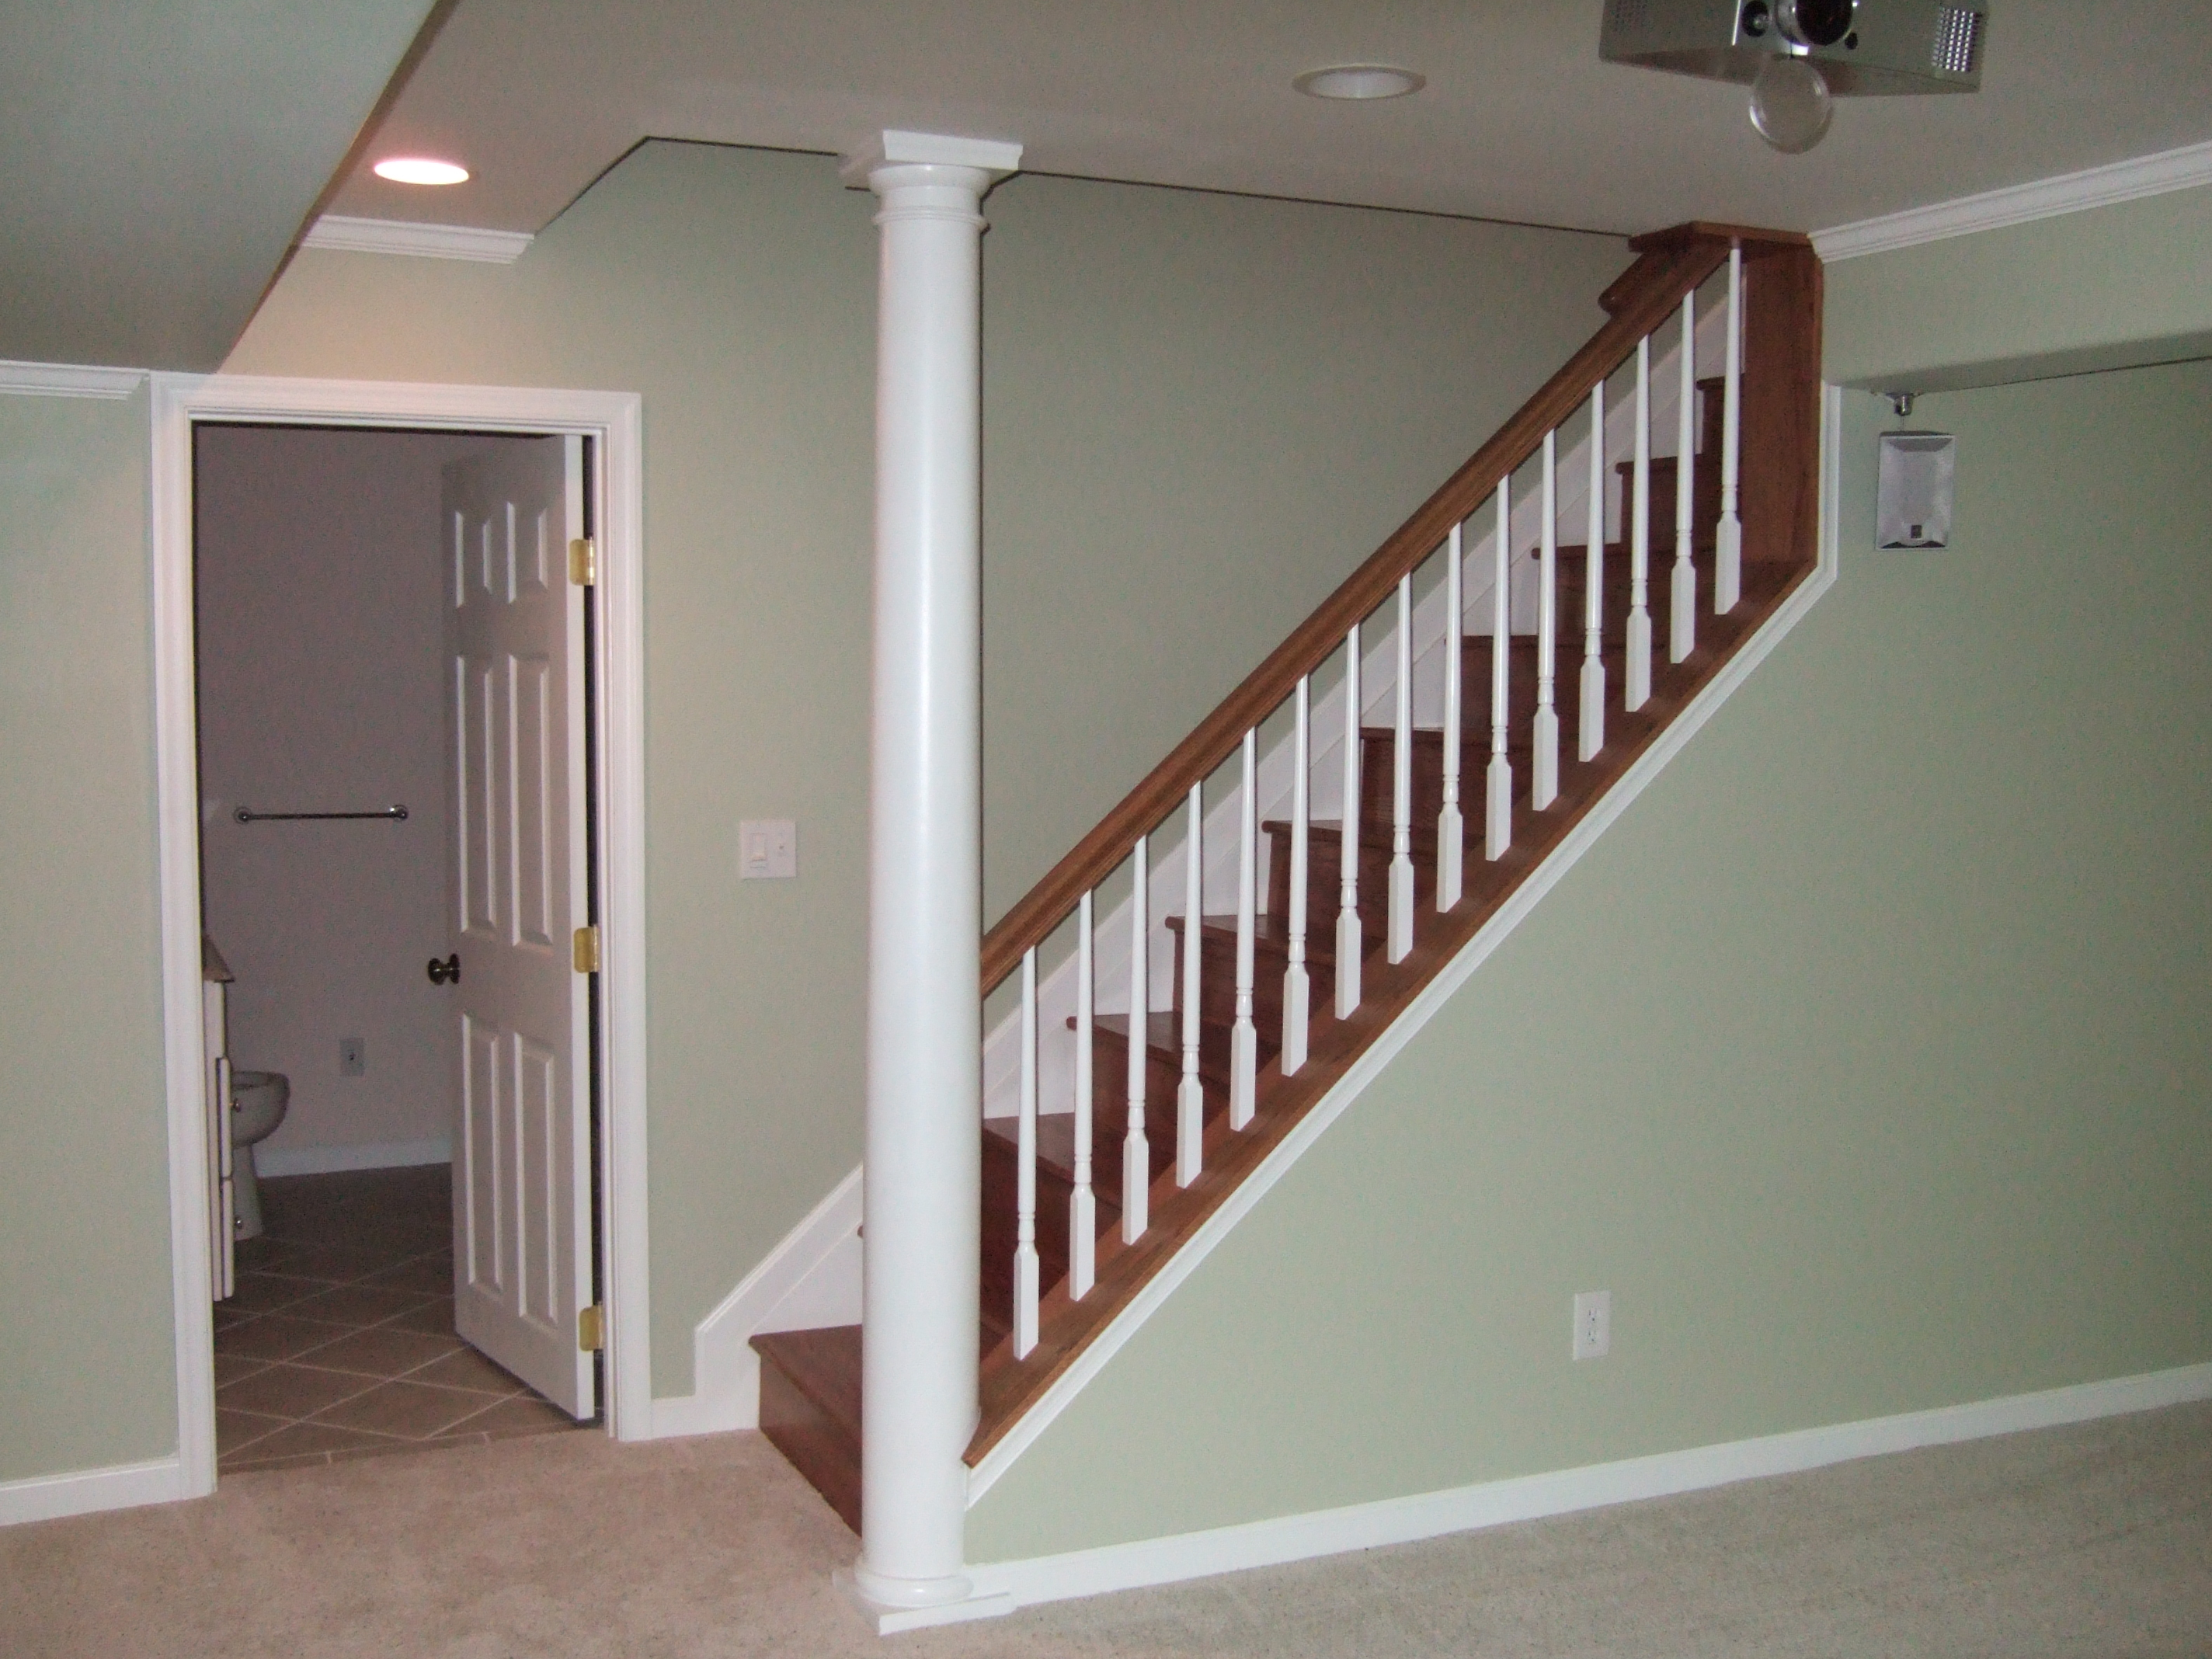 Column Molding Ideas Finished Basement Remodeling Fairfax Manassas Pictures Design Tile